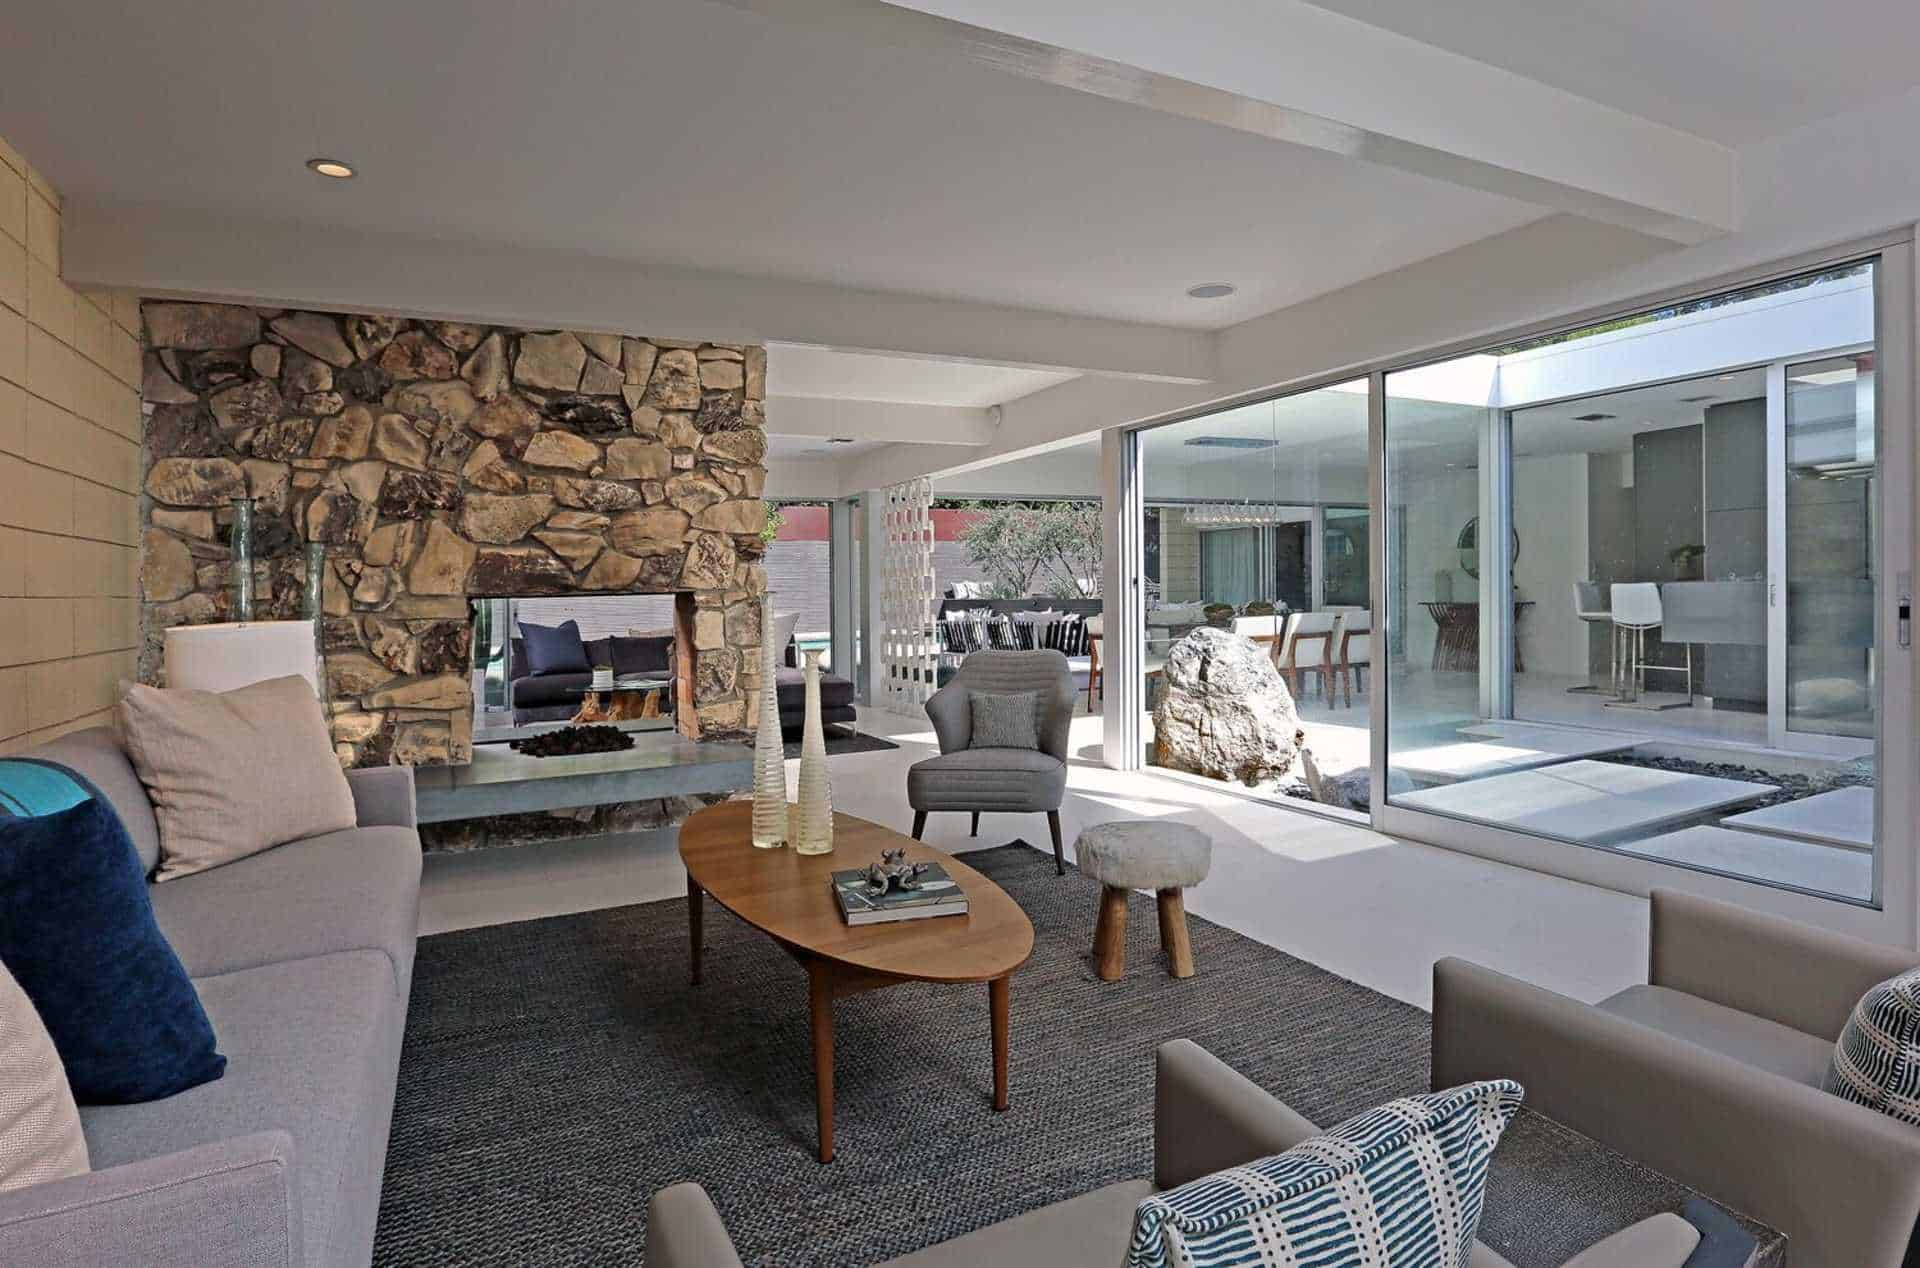 This living room has a two-way fireplace that is housed by a large stone wall that has a beige tone matching the wall adjacent to it complementing the light gray sofa. These are topped with a bright white ceiling with white exposed wooden beams.